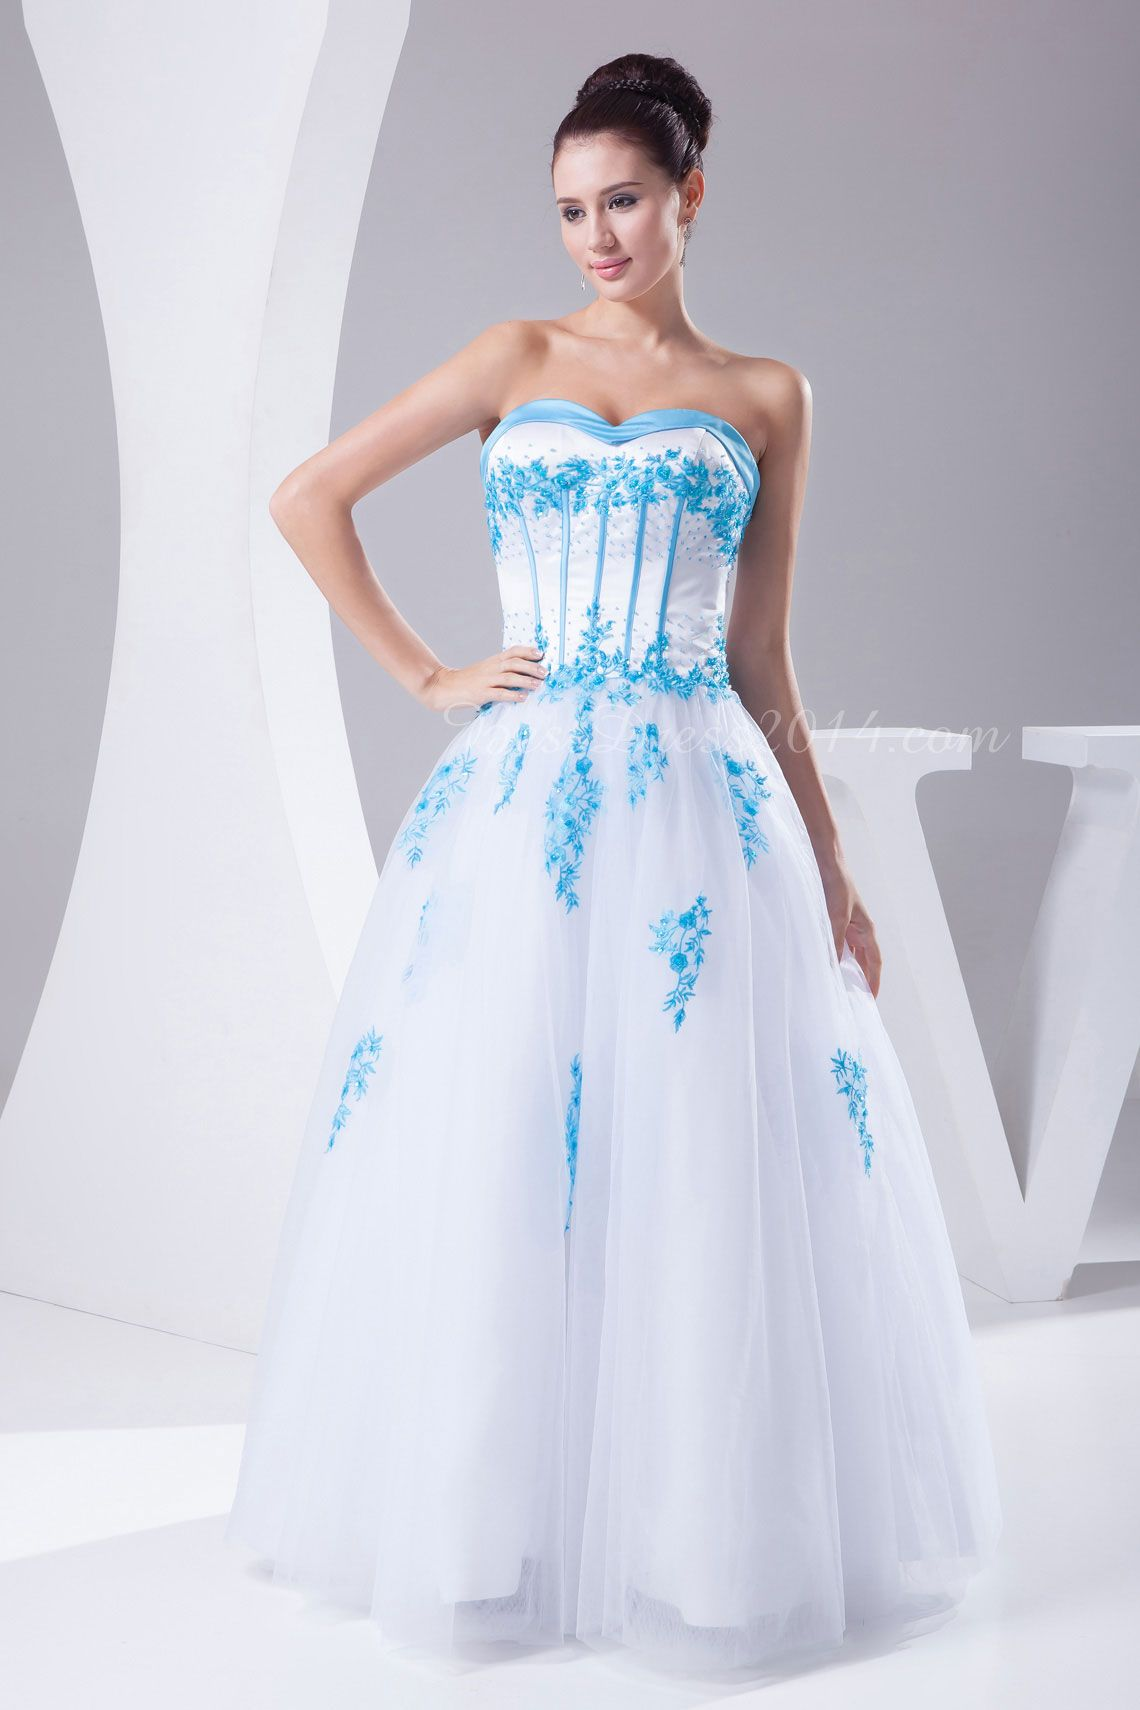 Tulle laceup natural waist pongee sleeveless embroidery wedding